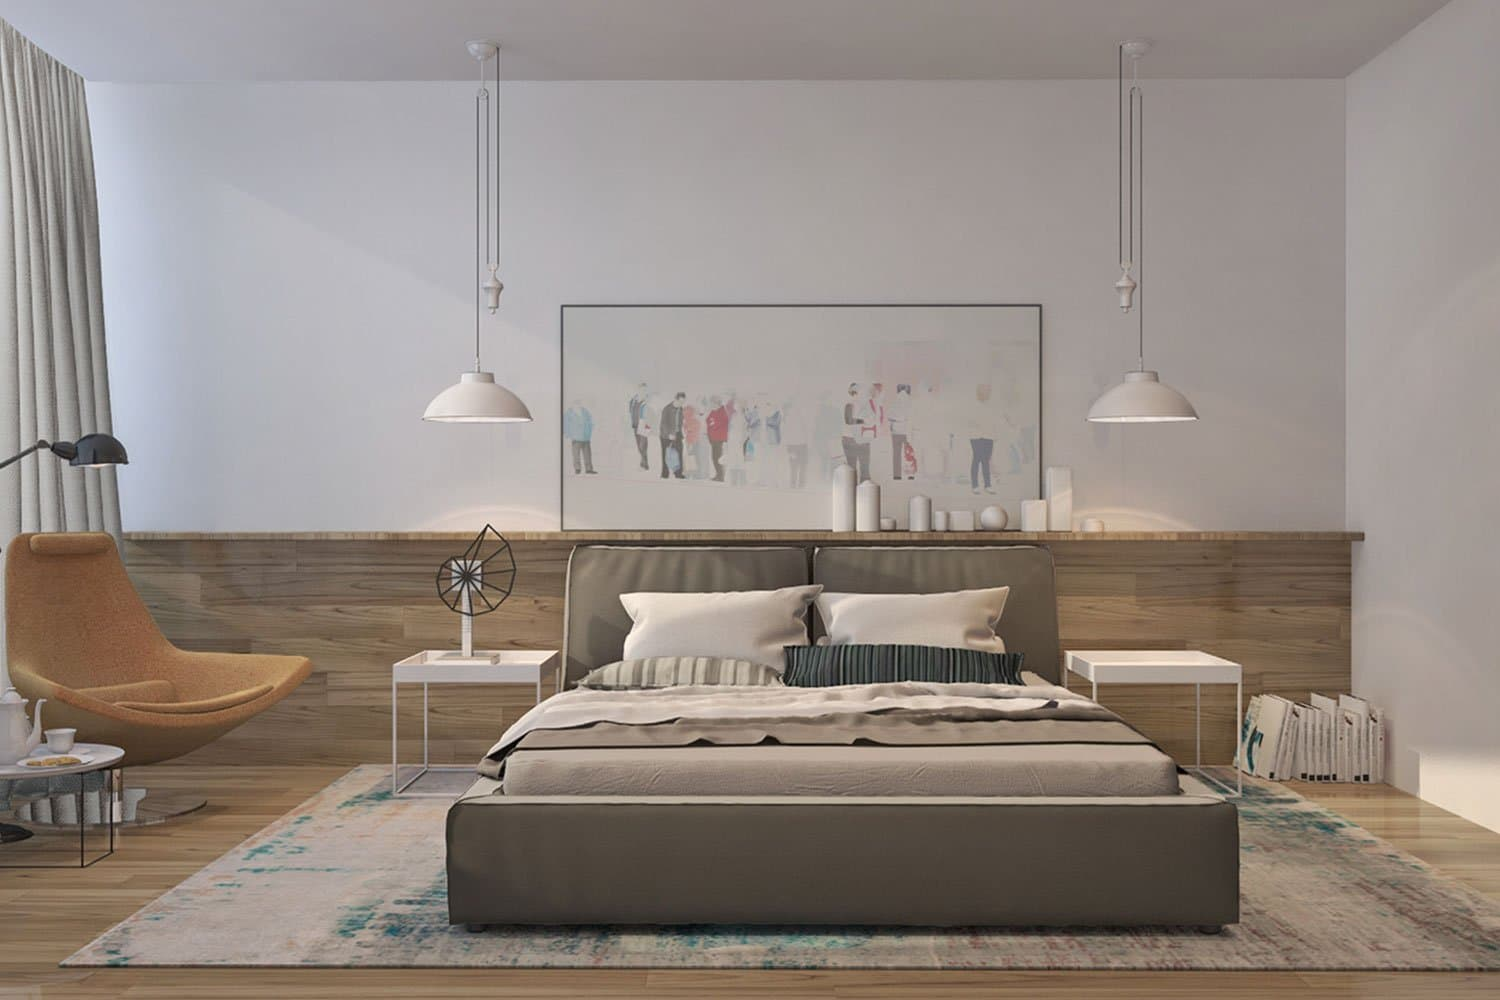 Bedroom Design 4